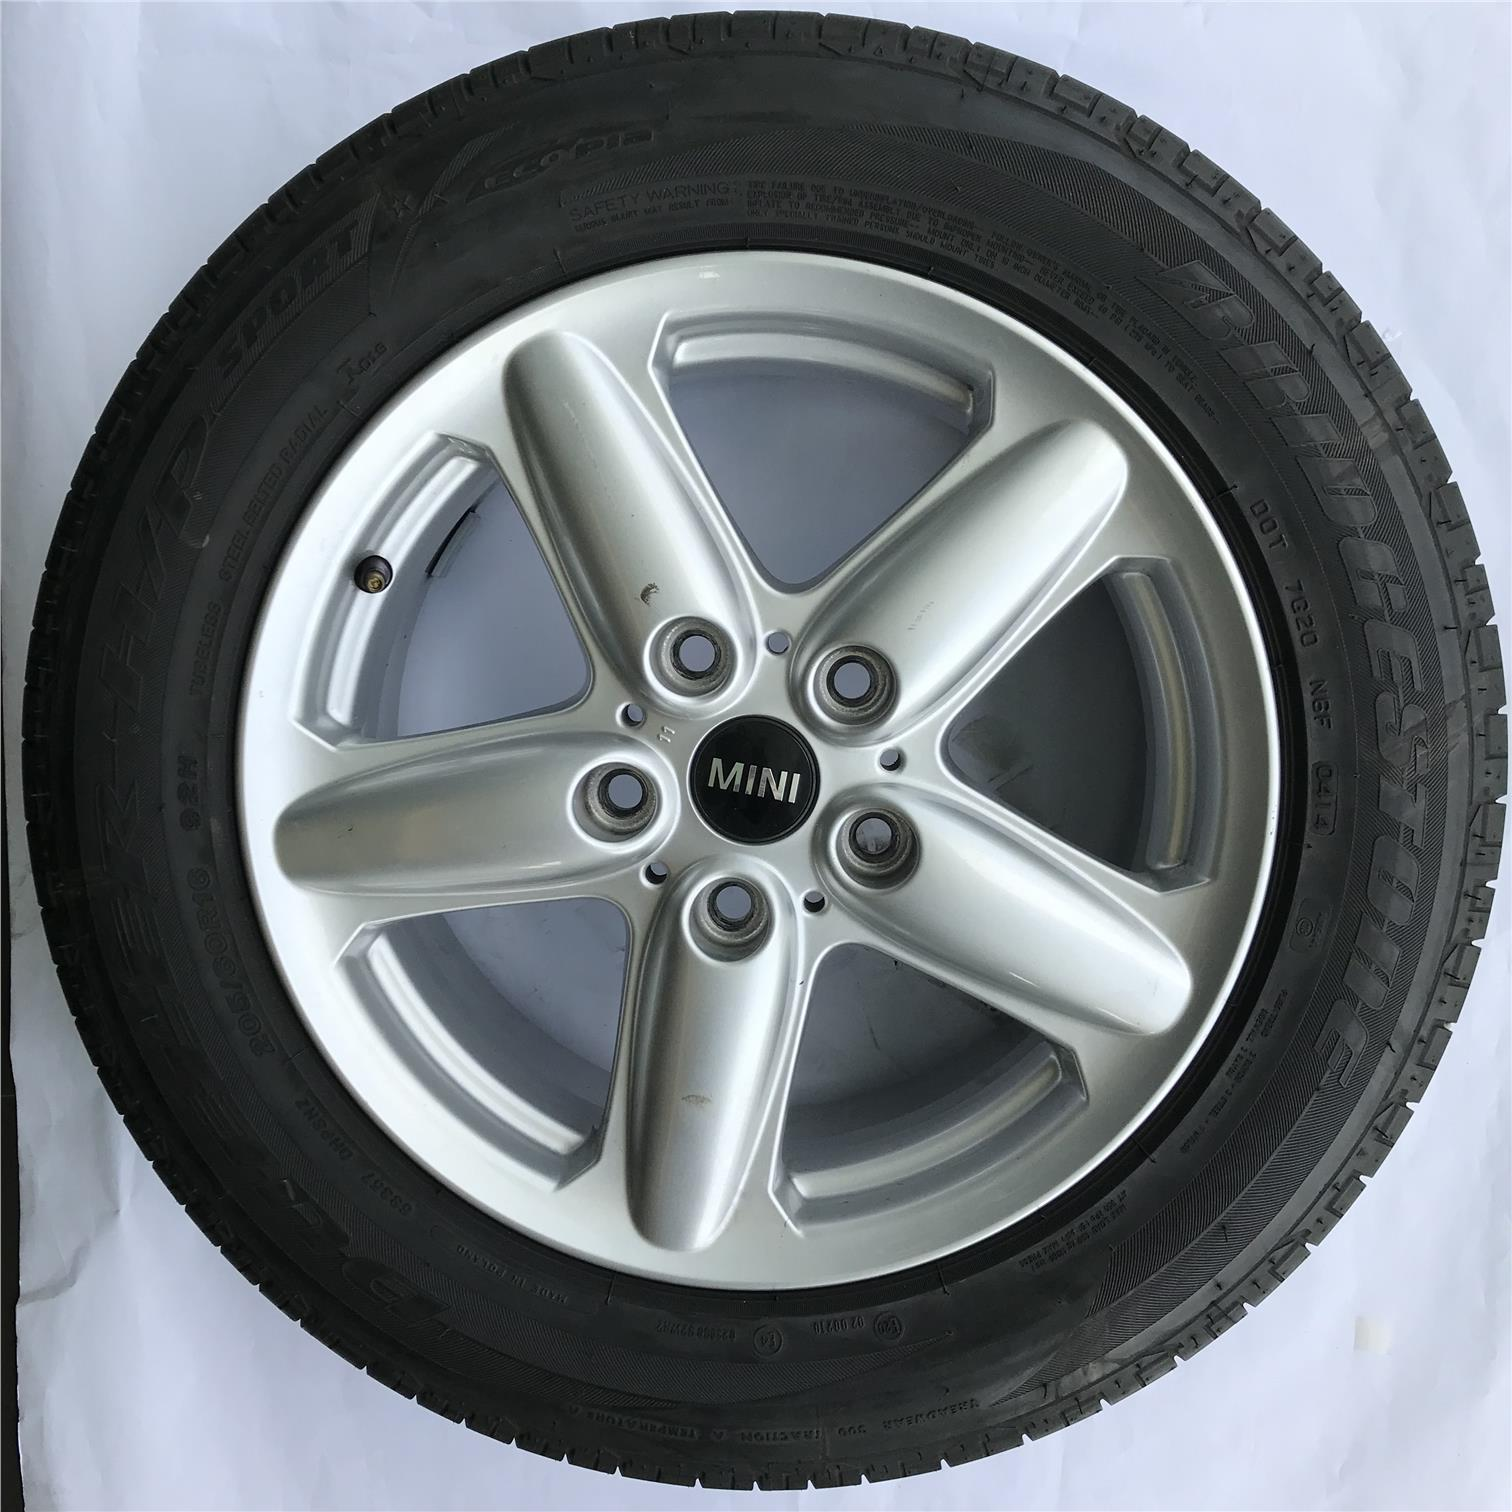 MINI ORIGINAL SPORT RIM & TYRE